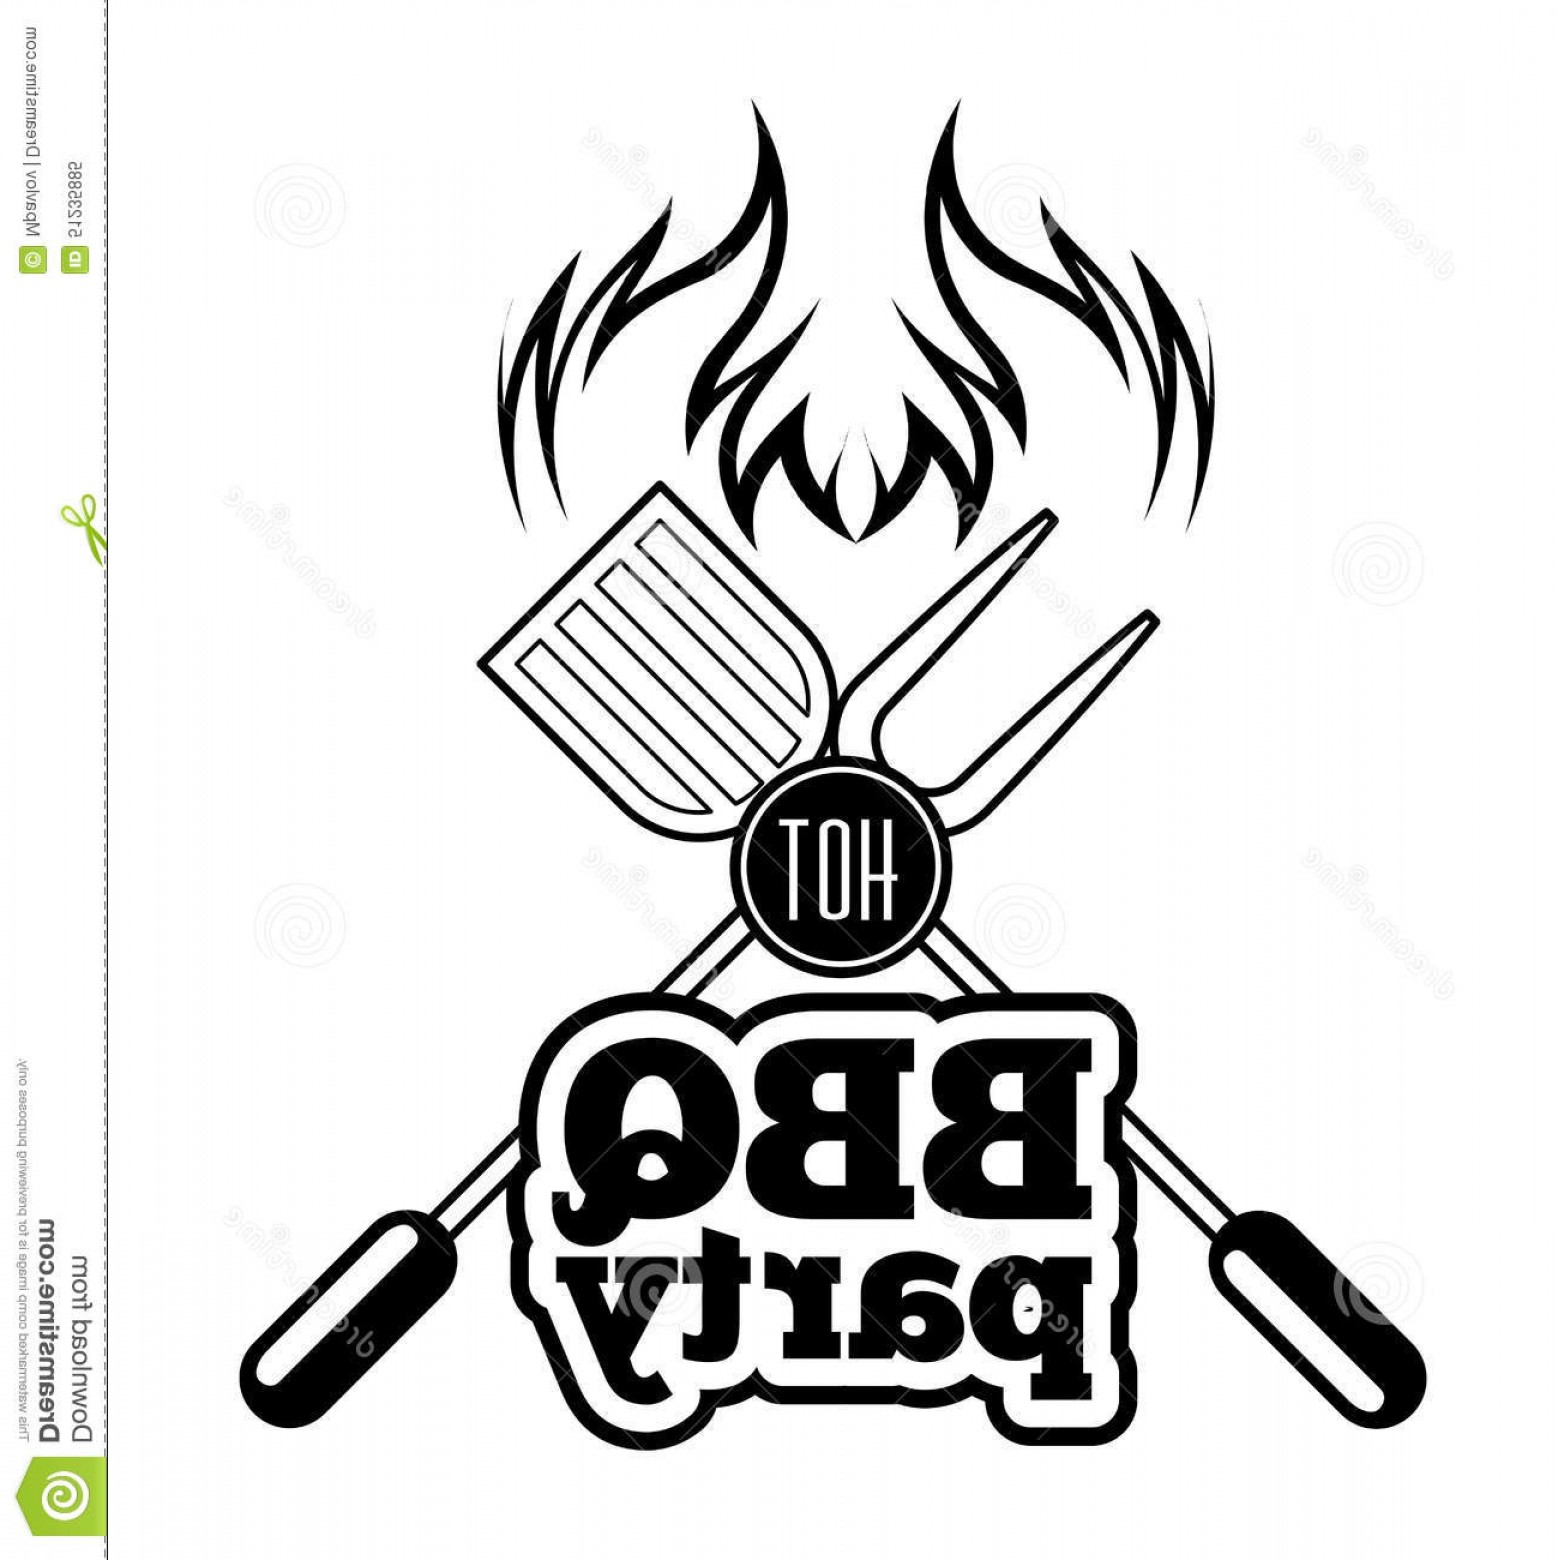 BBQ Grill Vector Black And White: Stock Illustration Barbecue Grill Vector Illustration White Background Image